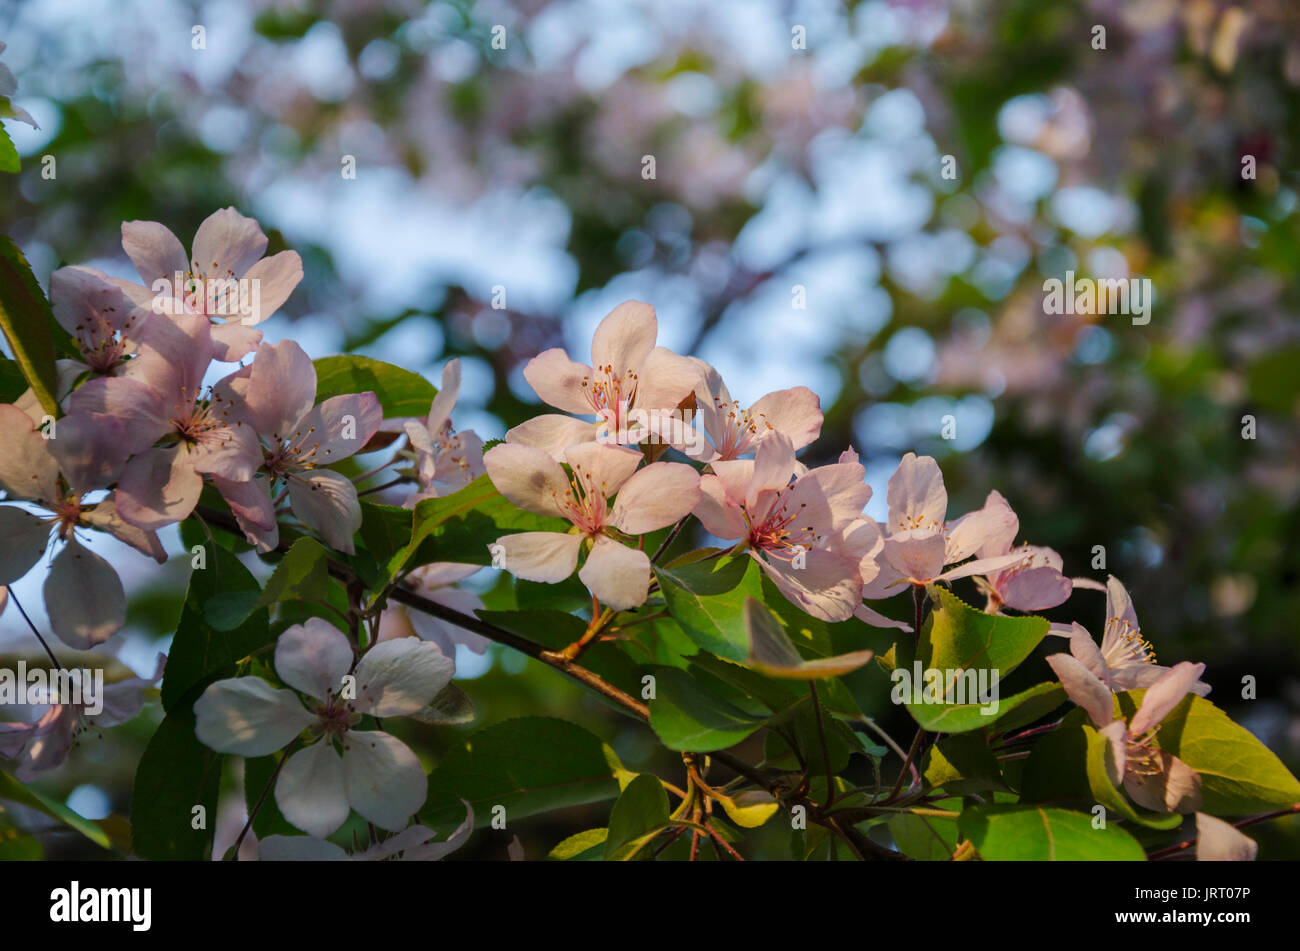 Blooming Delicate Pink Flowers A Branch Of Fruit Trees On A Blue